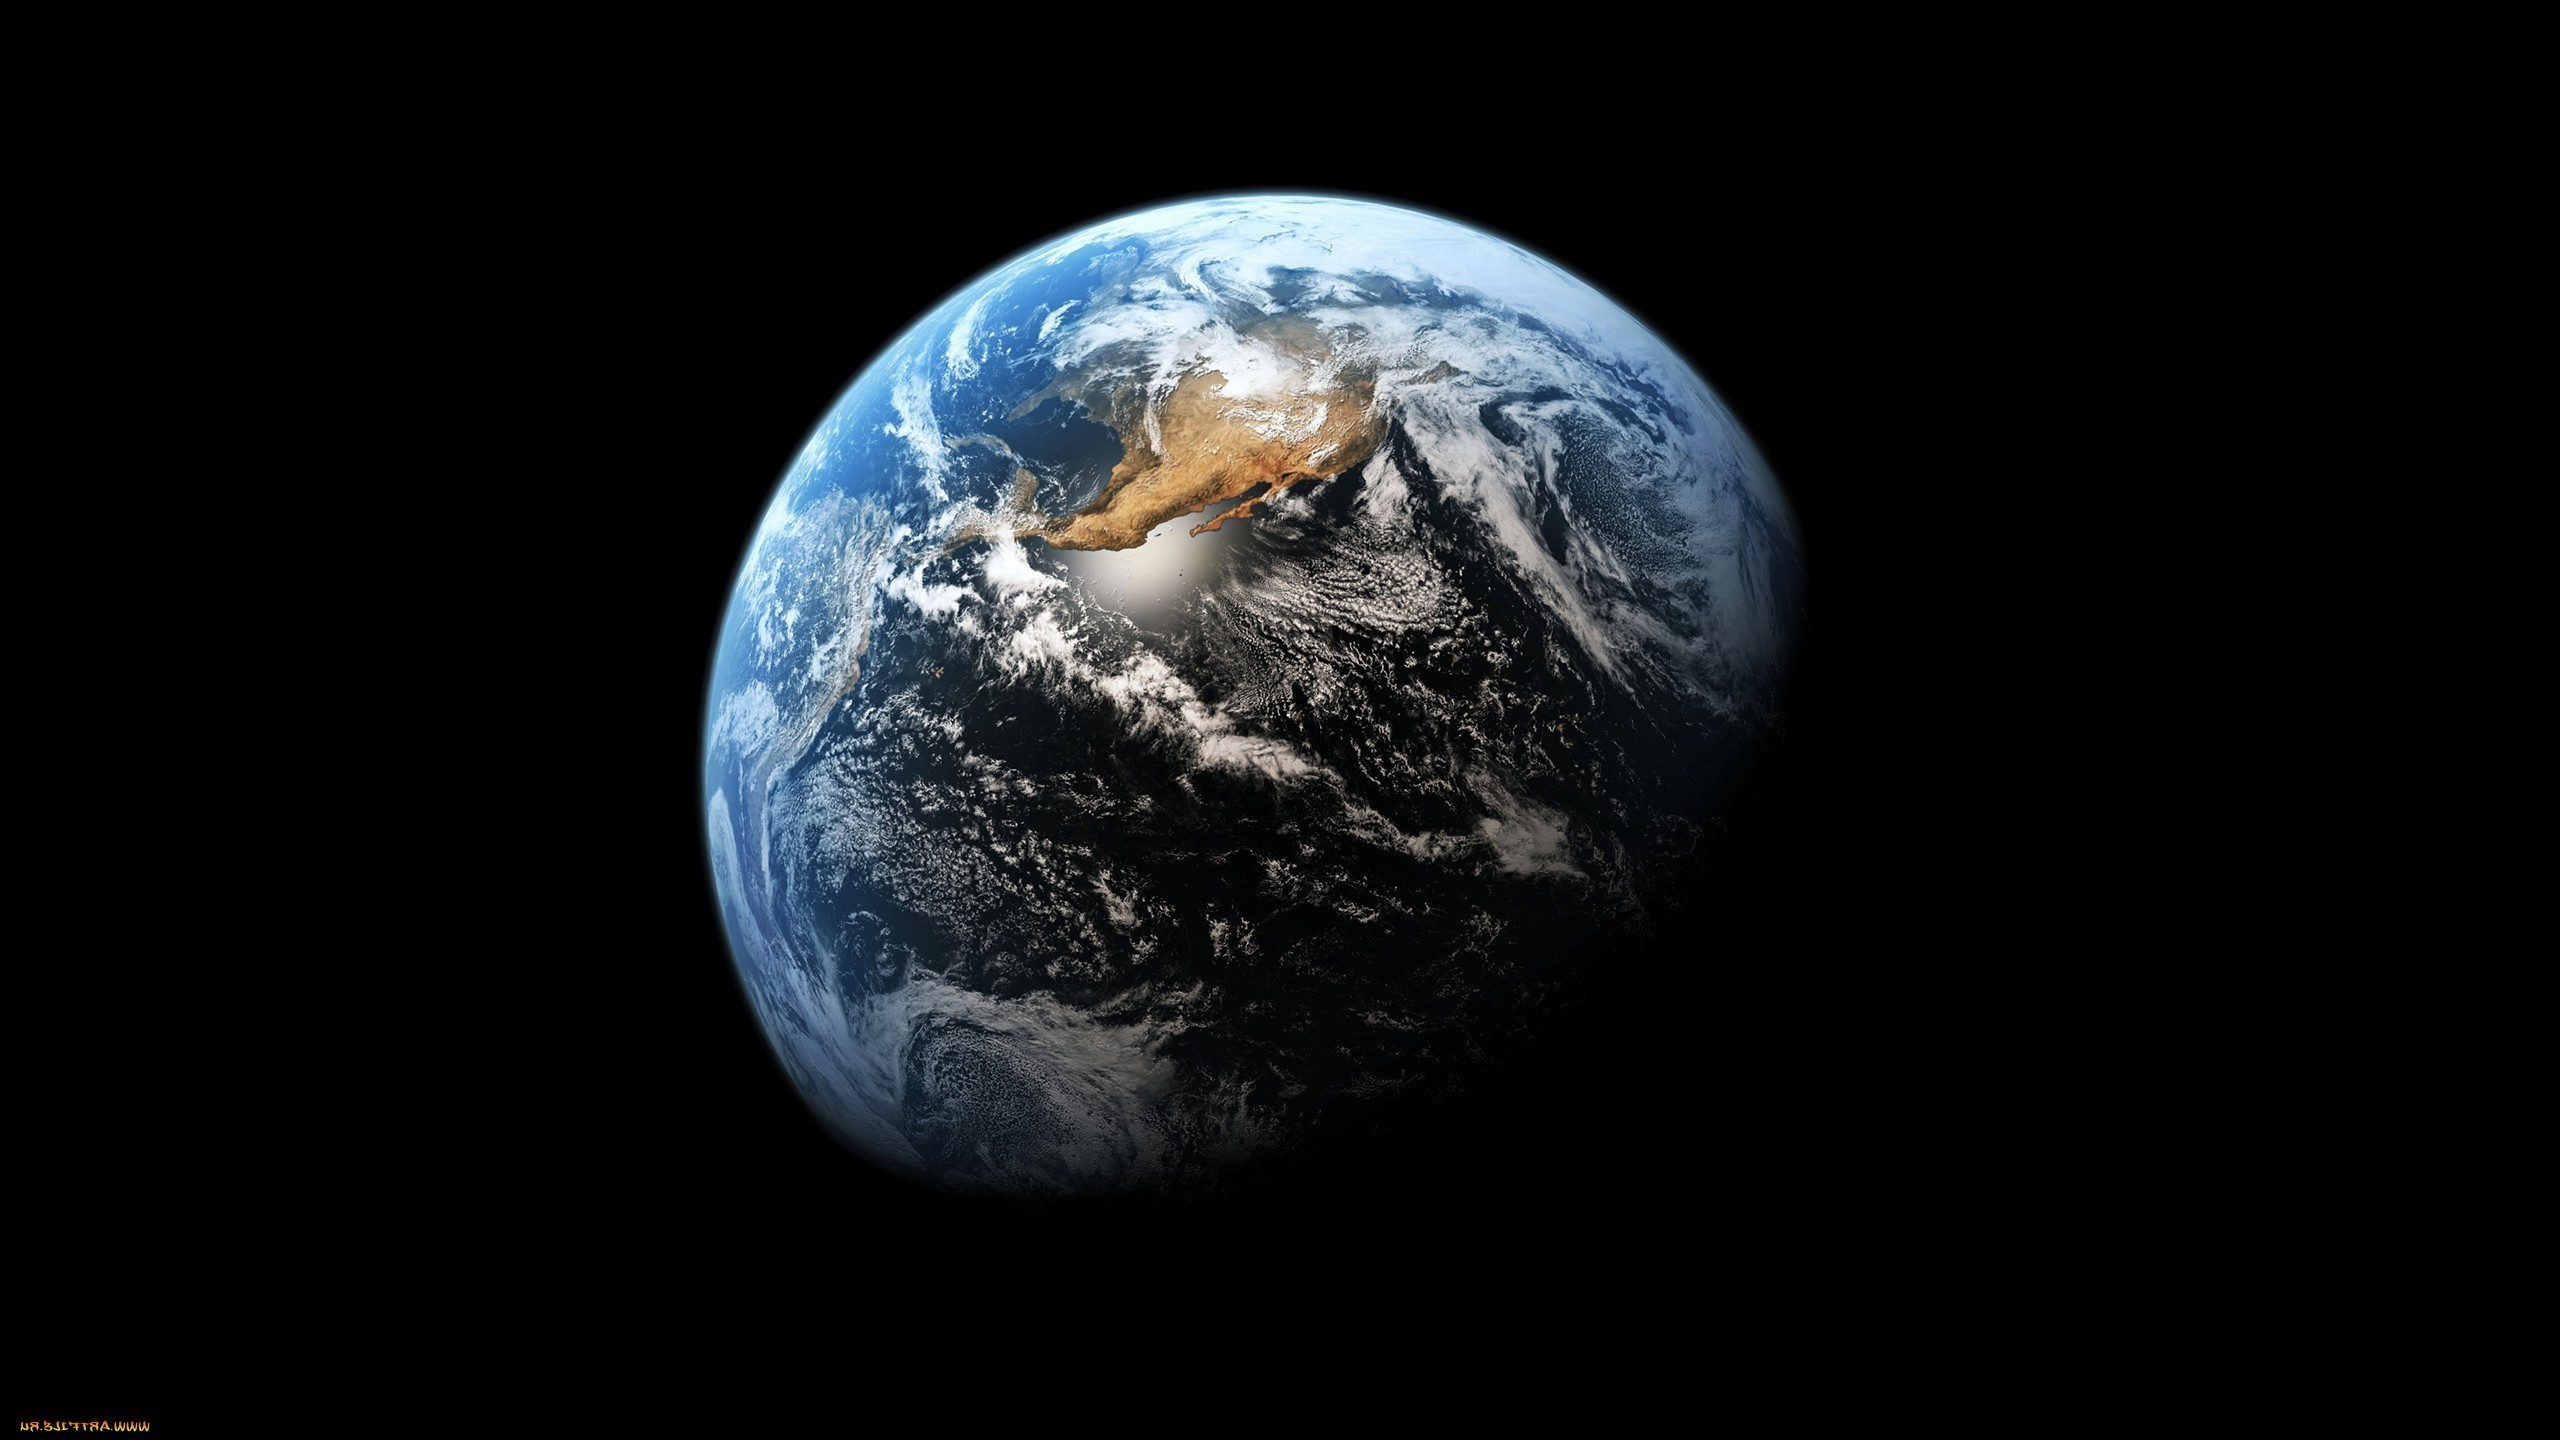 Earth Wallpaper Proof Of Parallel Universe 129031 Hd